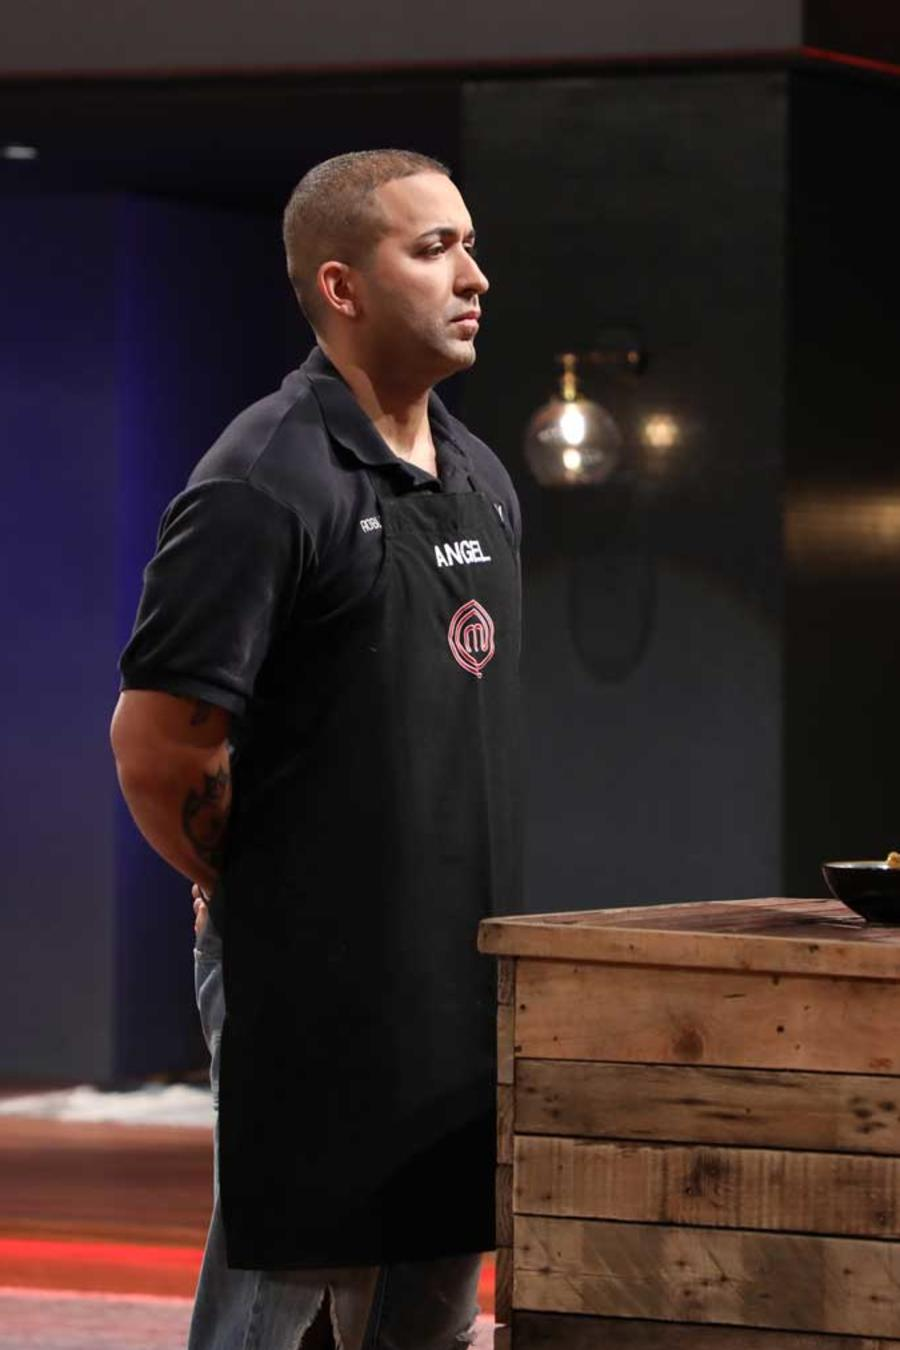 Ángel en MasterChef Latino